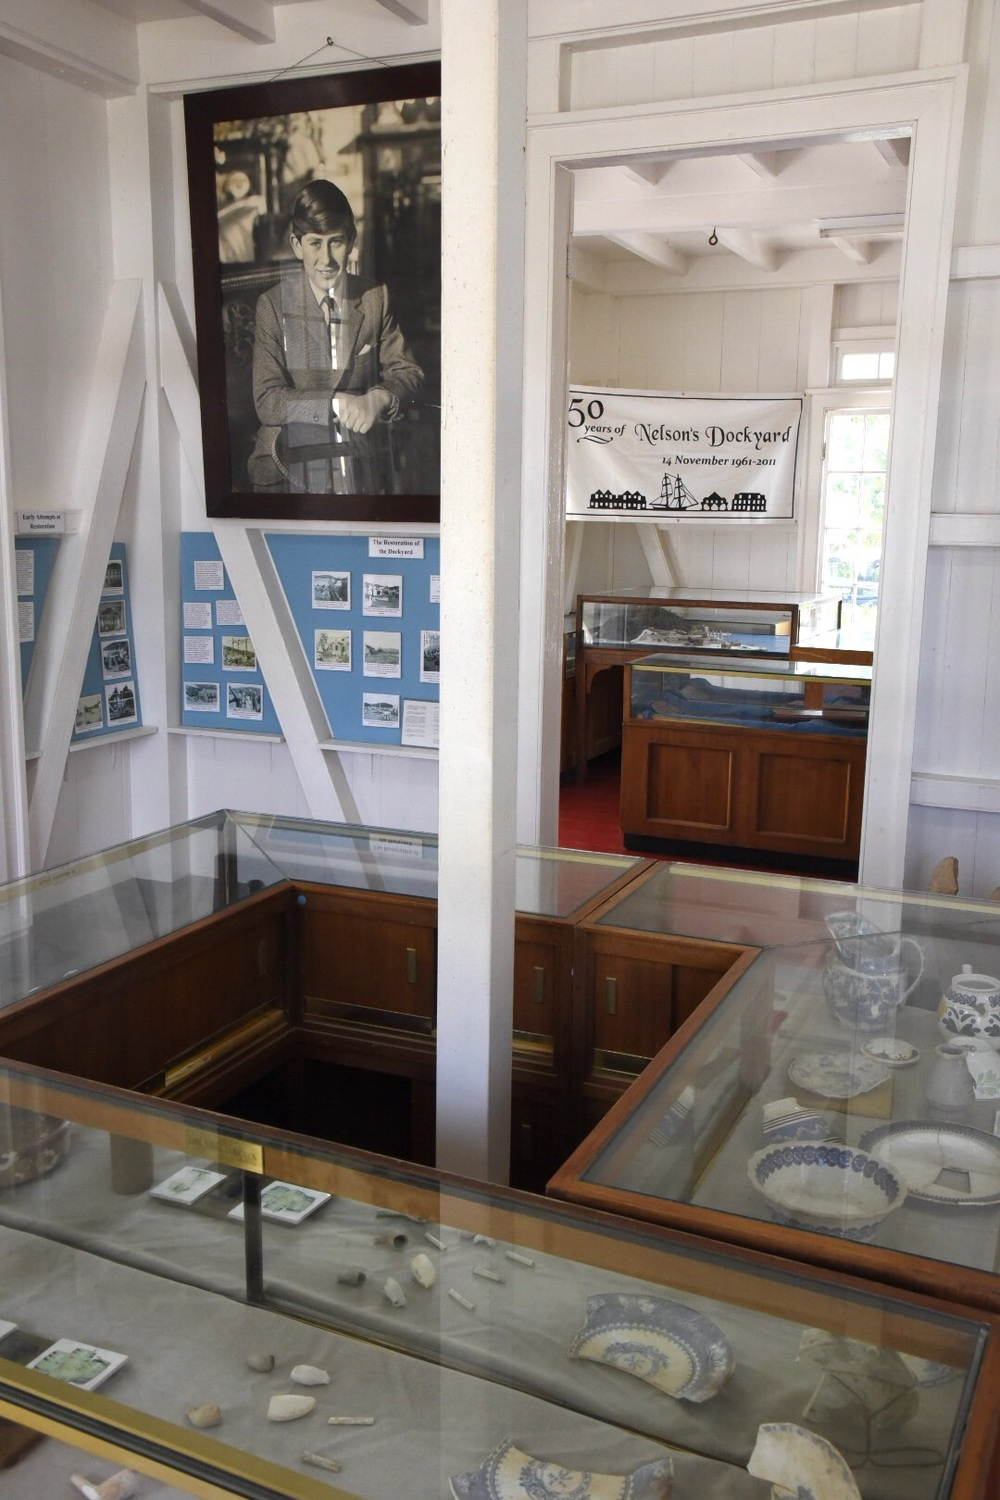 Artifacts and displays at the museum at the Nelsons Dockyard